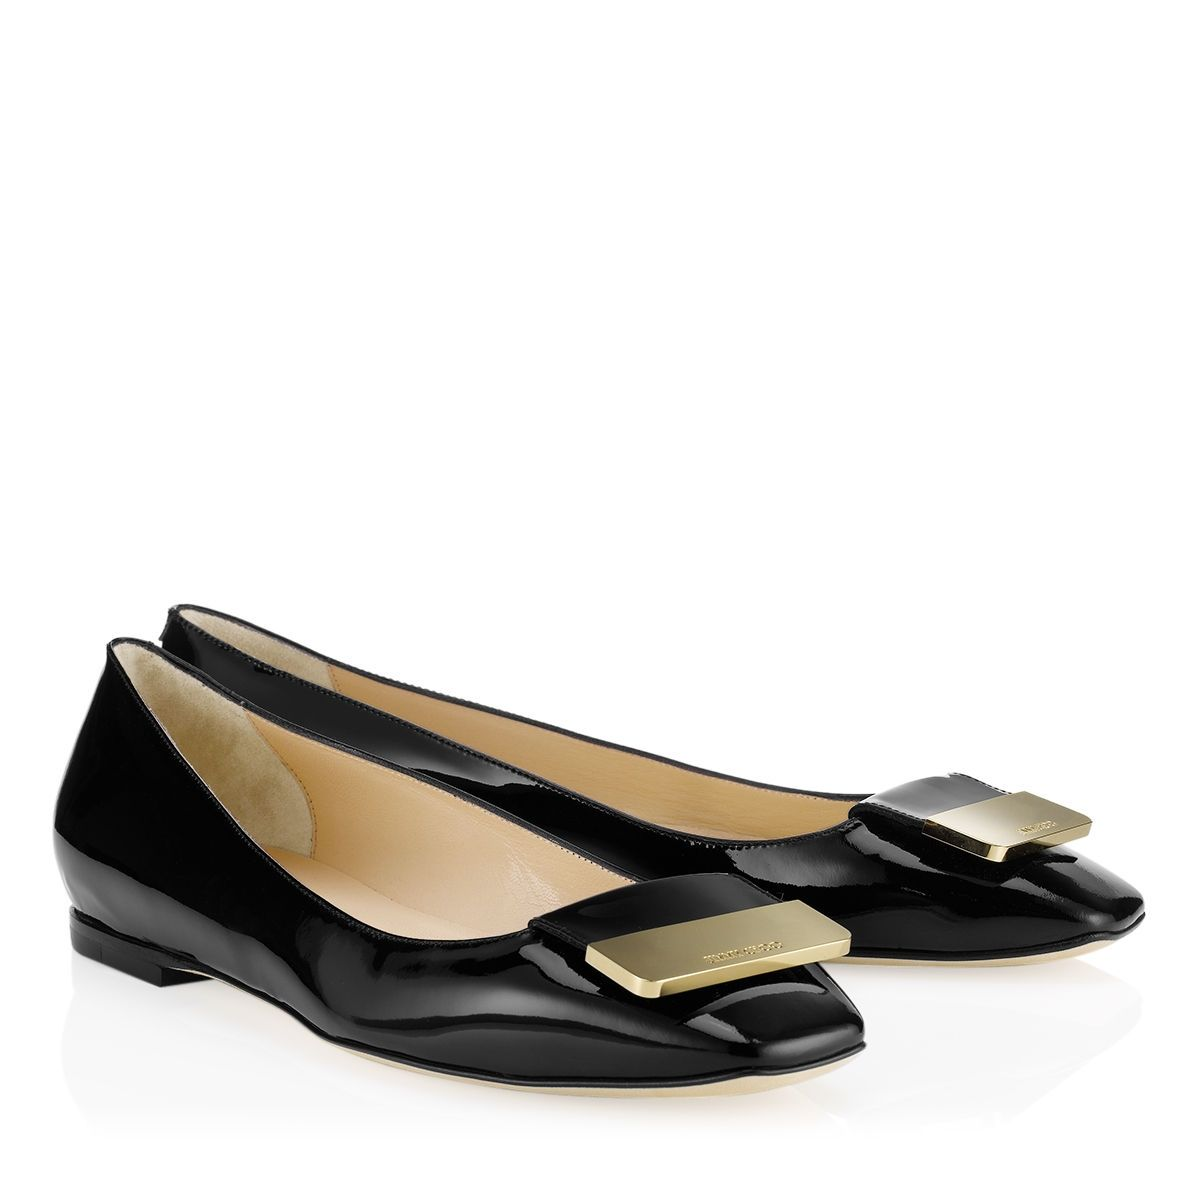 Jimmy Choo Leather Square-Toe Pumps pictures for sale yiqax